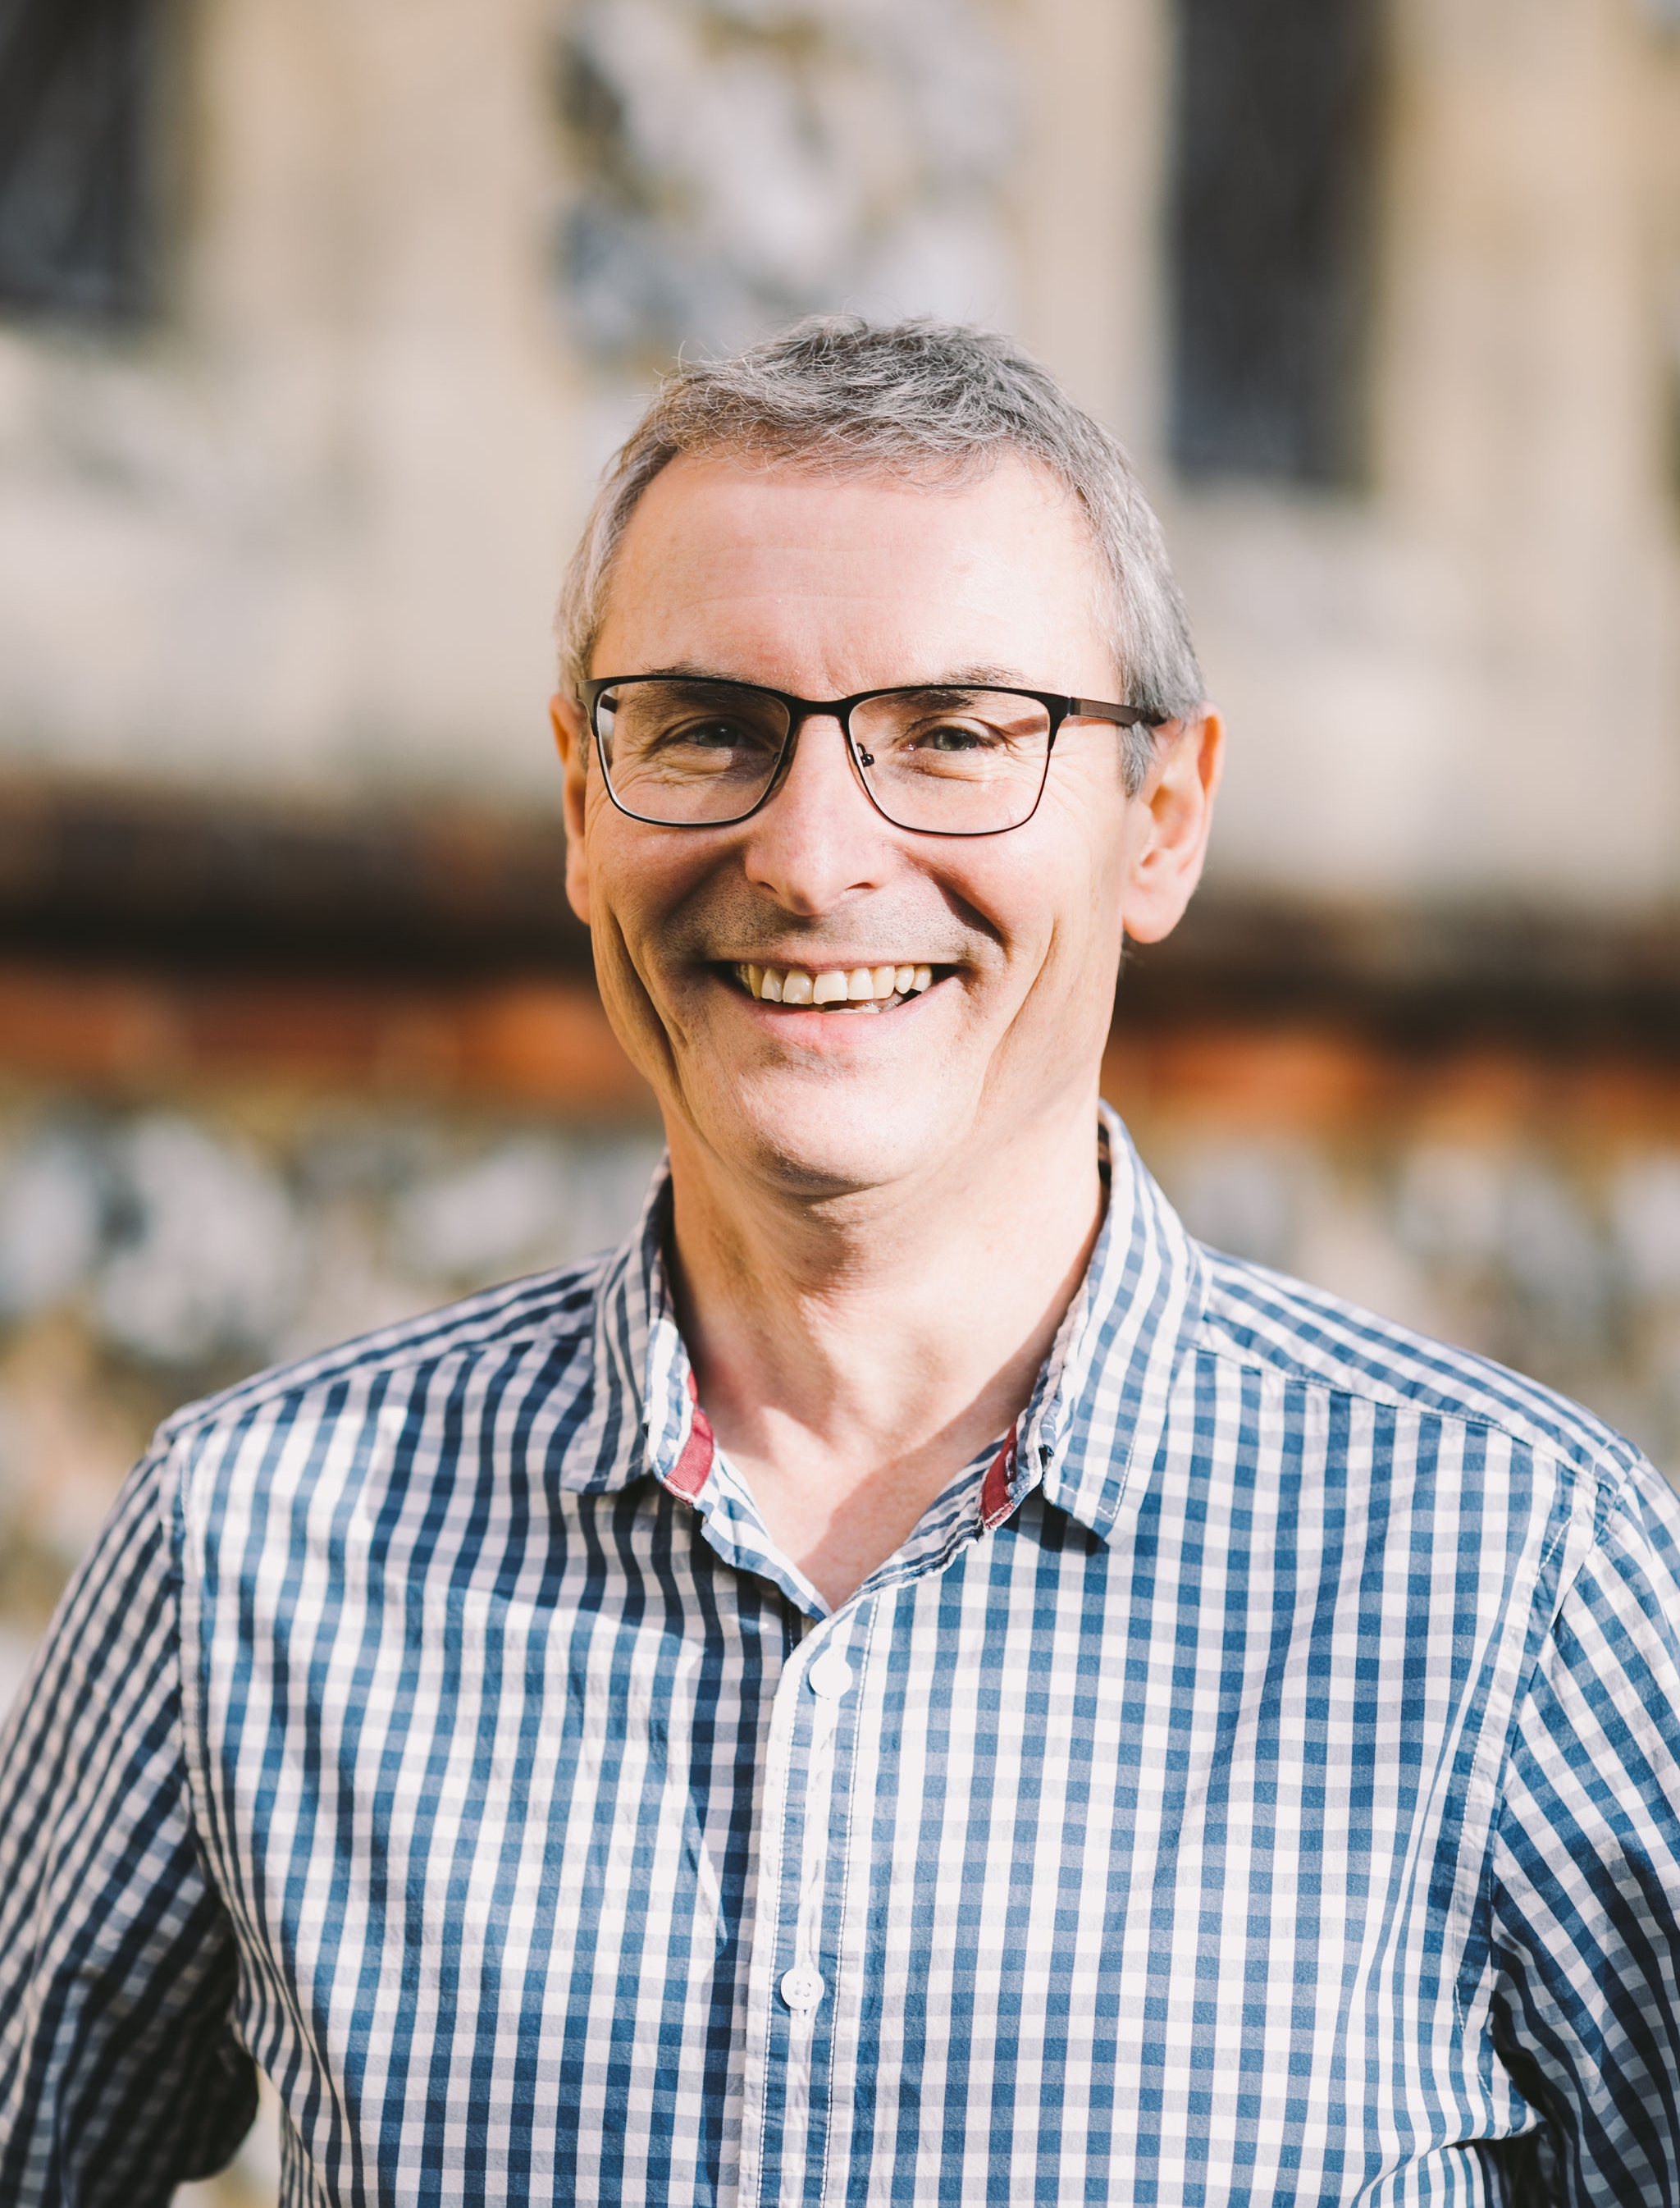 Paul Taylor - Vicar (church leader) - Paul has led churches in Basingstoke and Salisbury before coming to lead St Matthew's in 2018. Paul was originally a building surveyor and still enjoys DIY, especially demolition! He is married to Lynn and they both love Worthing, for the local people who are so welcoming, the South Downs walking, and the sea where Paul can be seen falling off his paddle board!